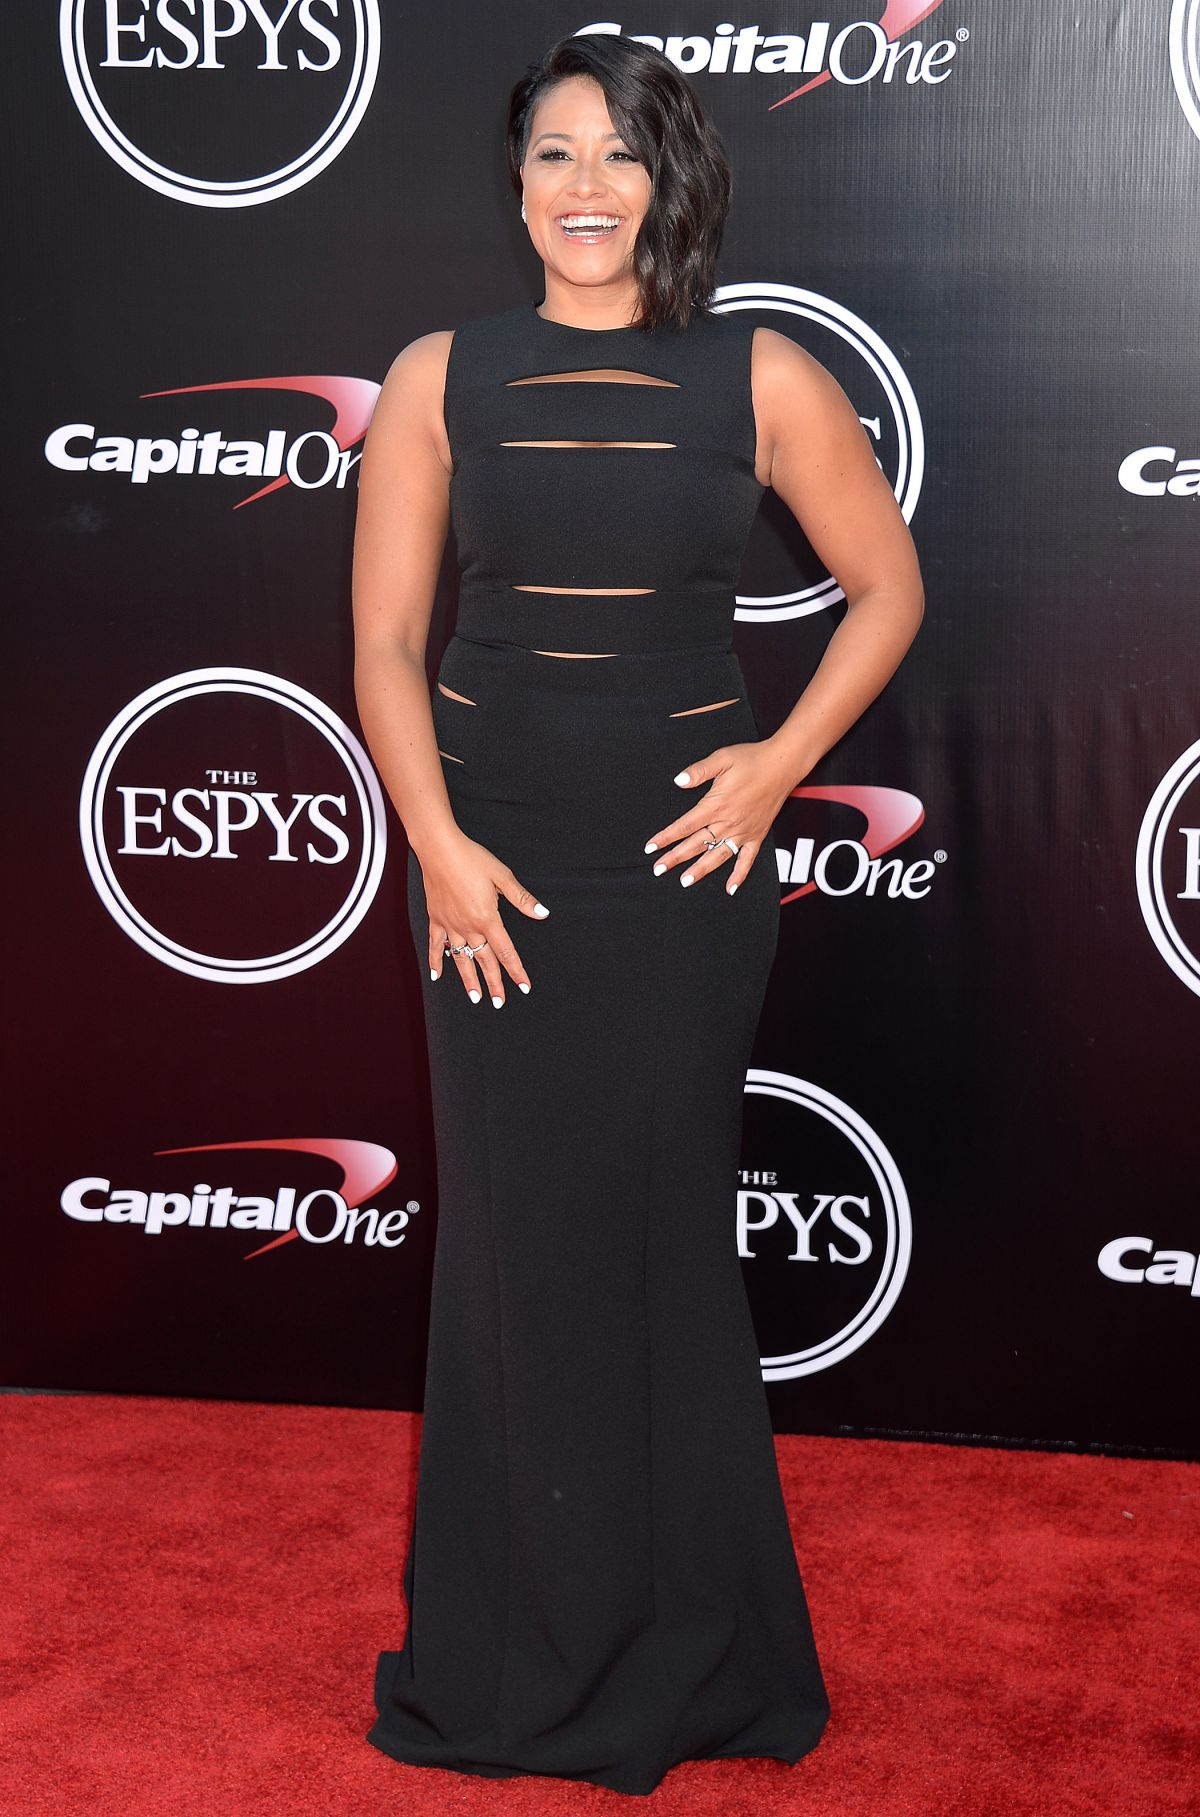 gina-rodriguez-at-2016-espys-in-los-angeles-07-13-2016_2.jpg